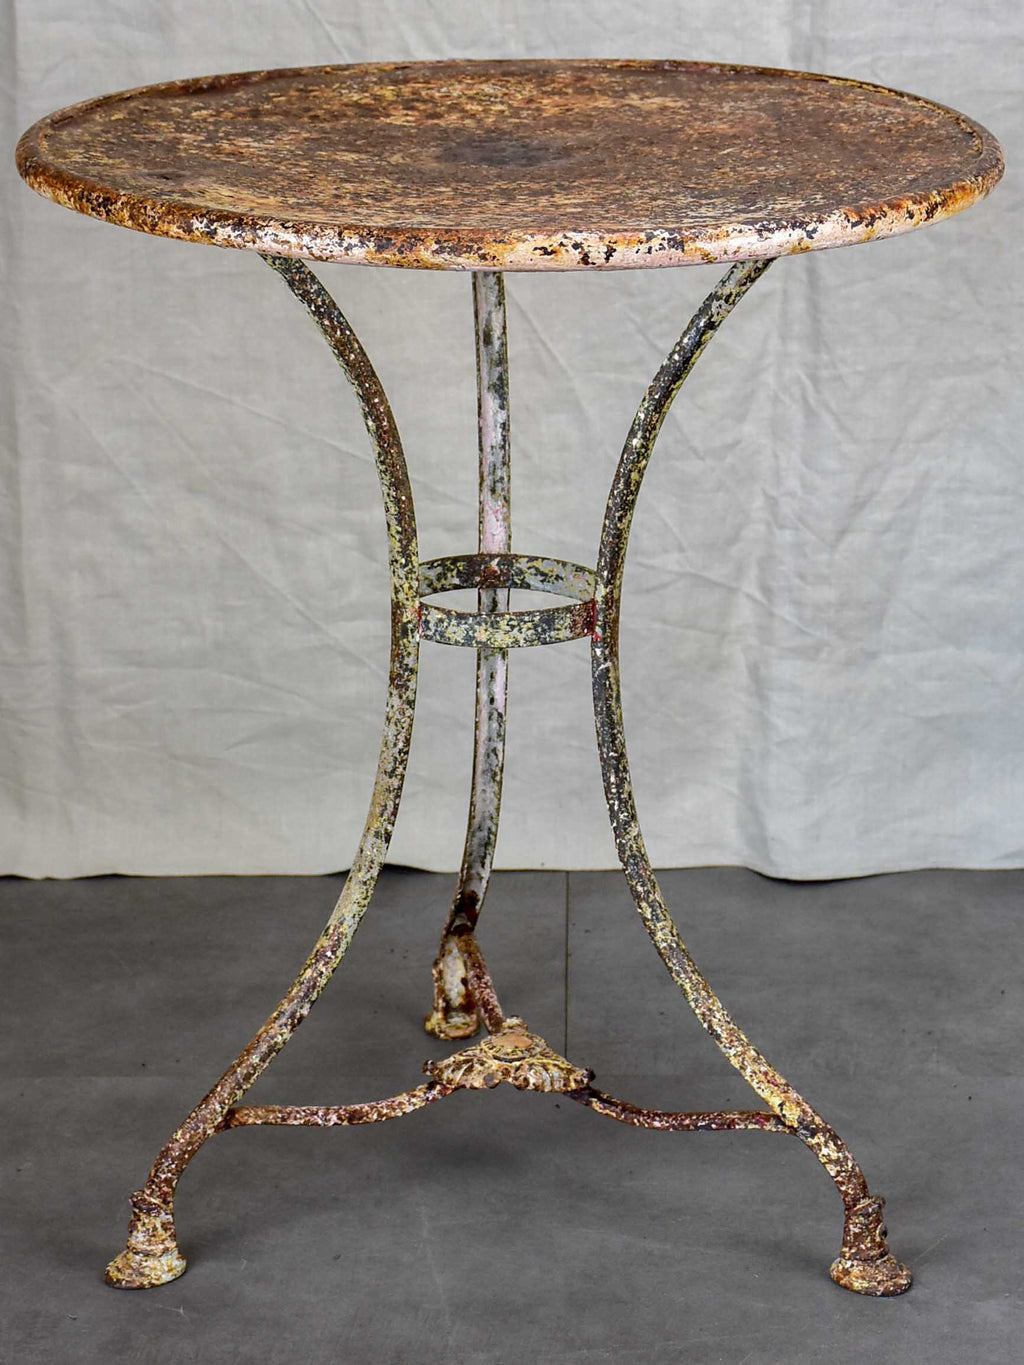 Original 19th Century Arras garden table with hoof feet